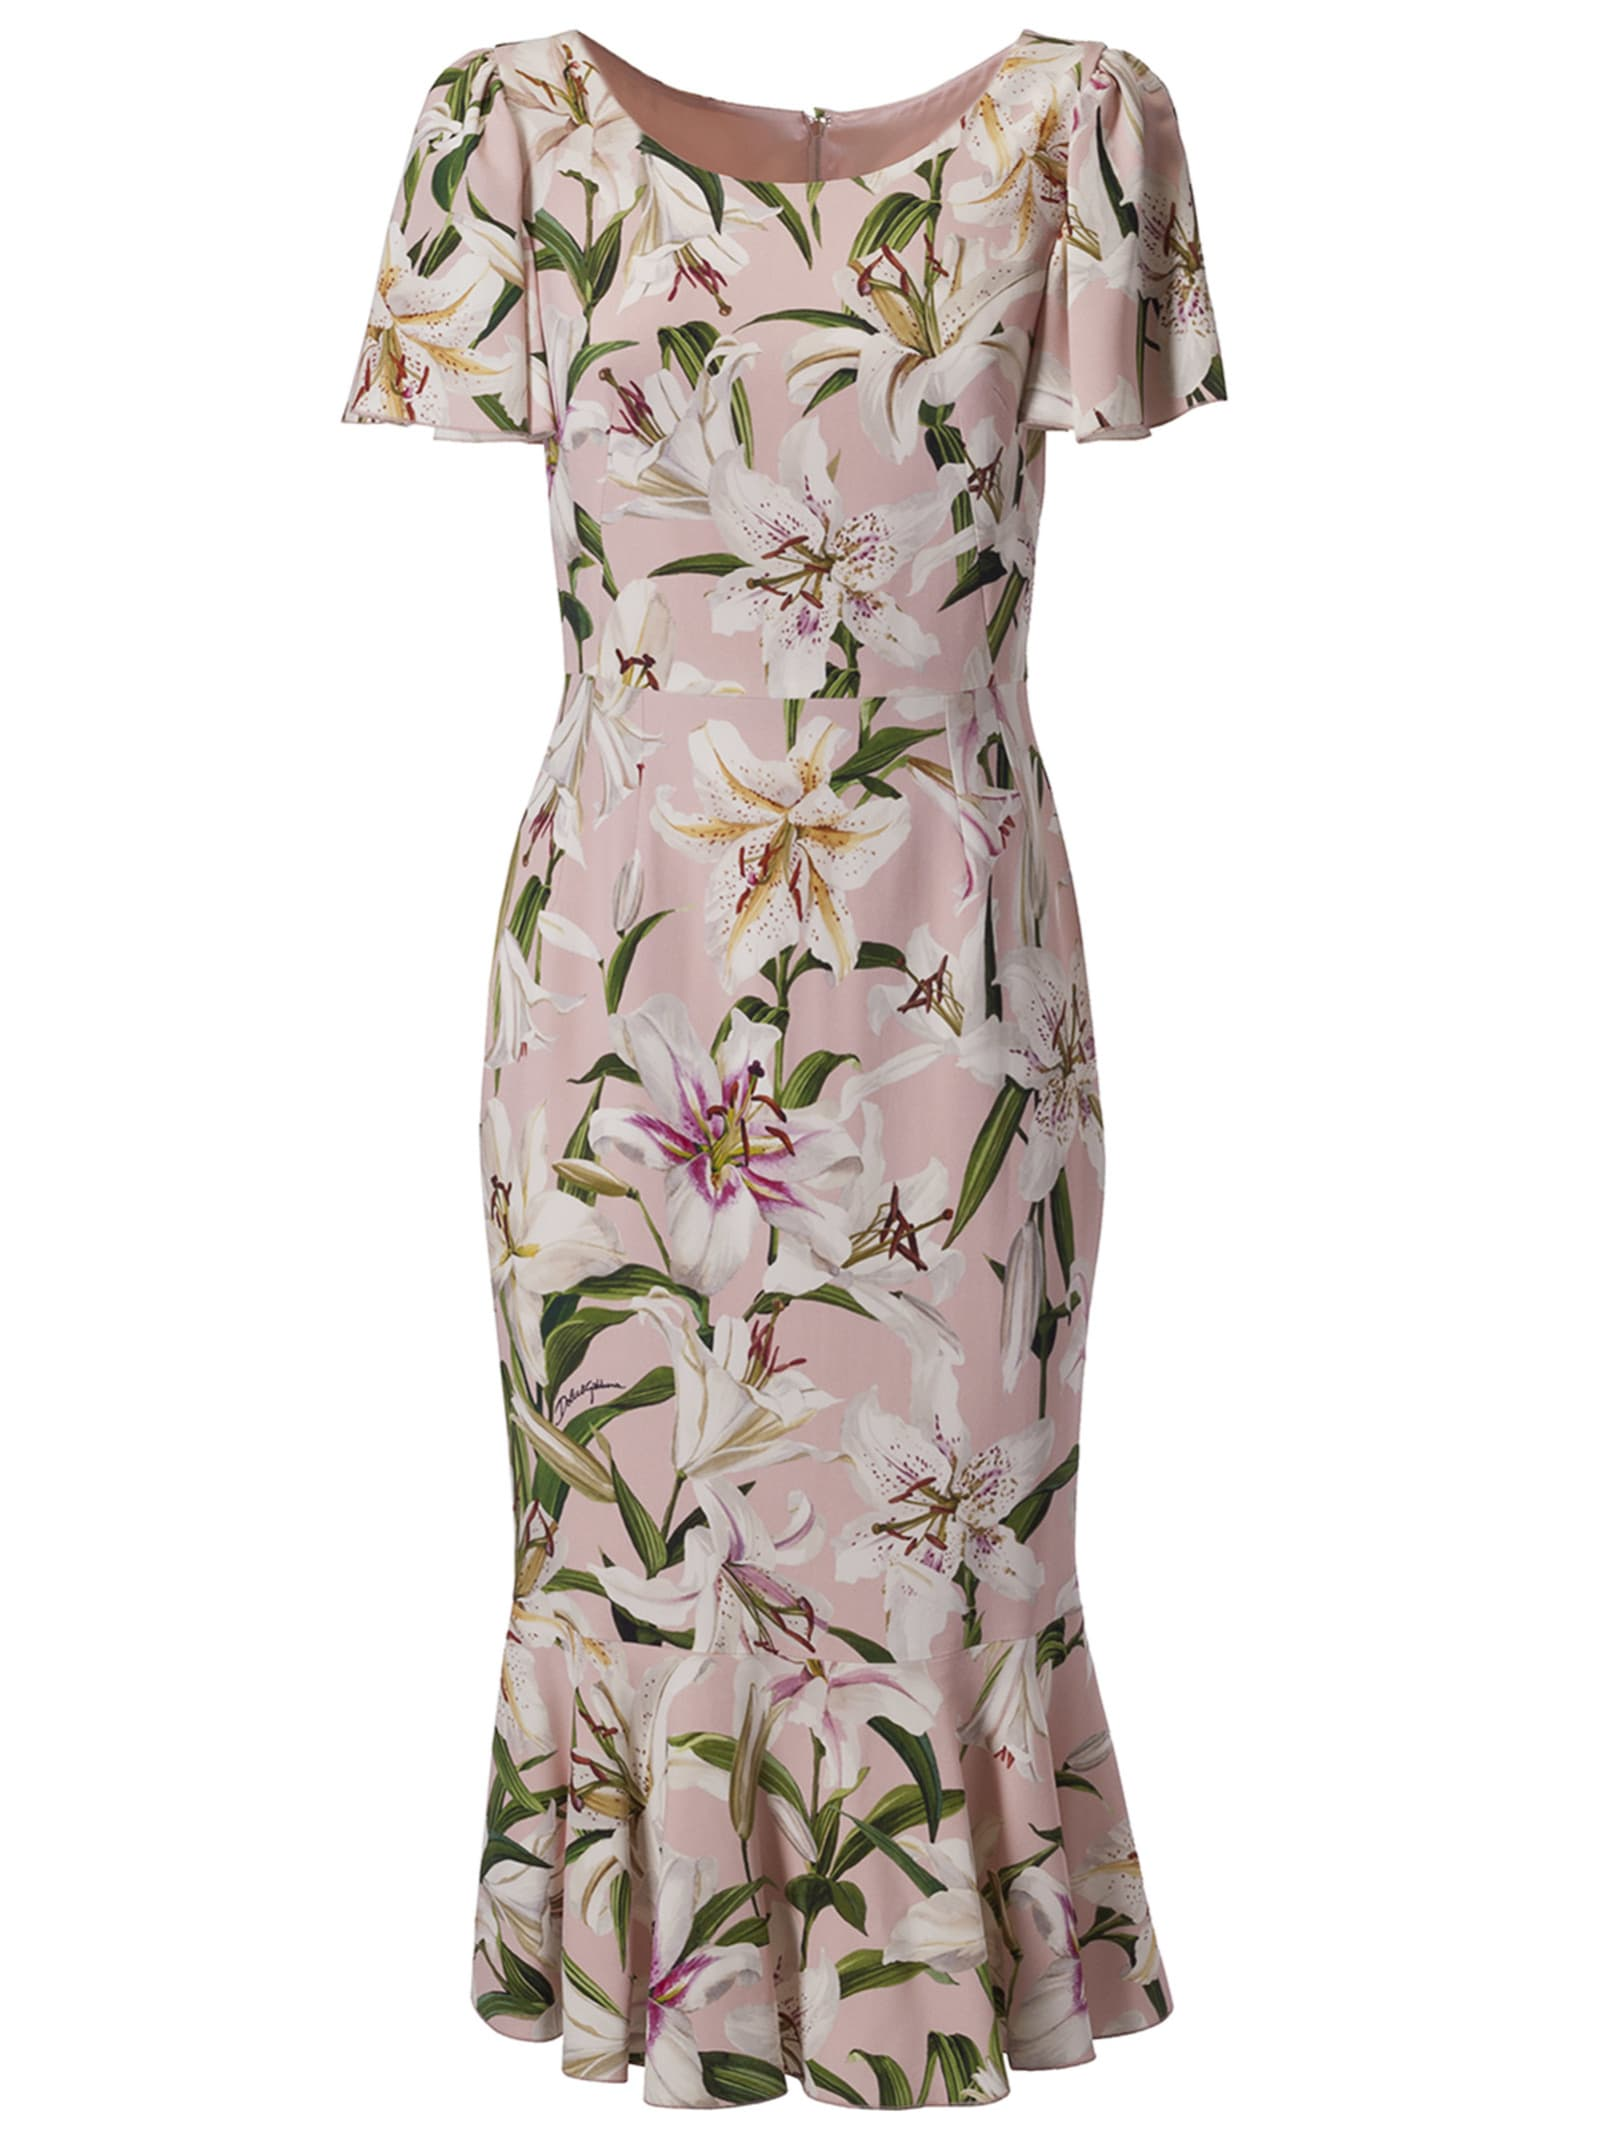 Dolce & Gabbana Flower Print Dress